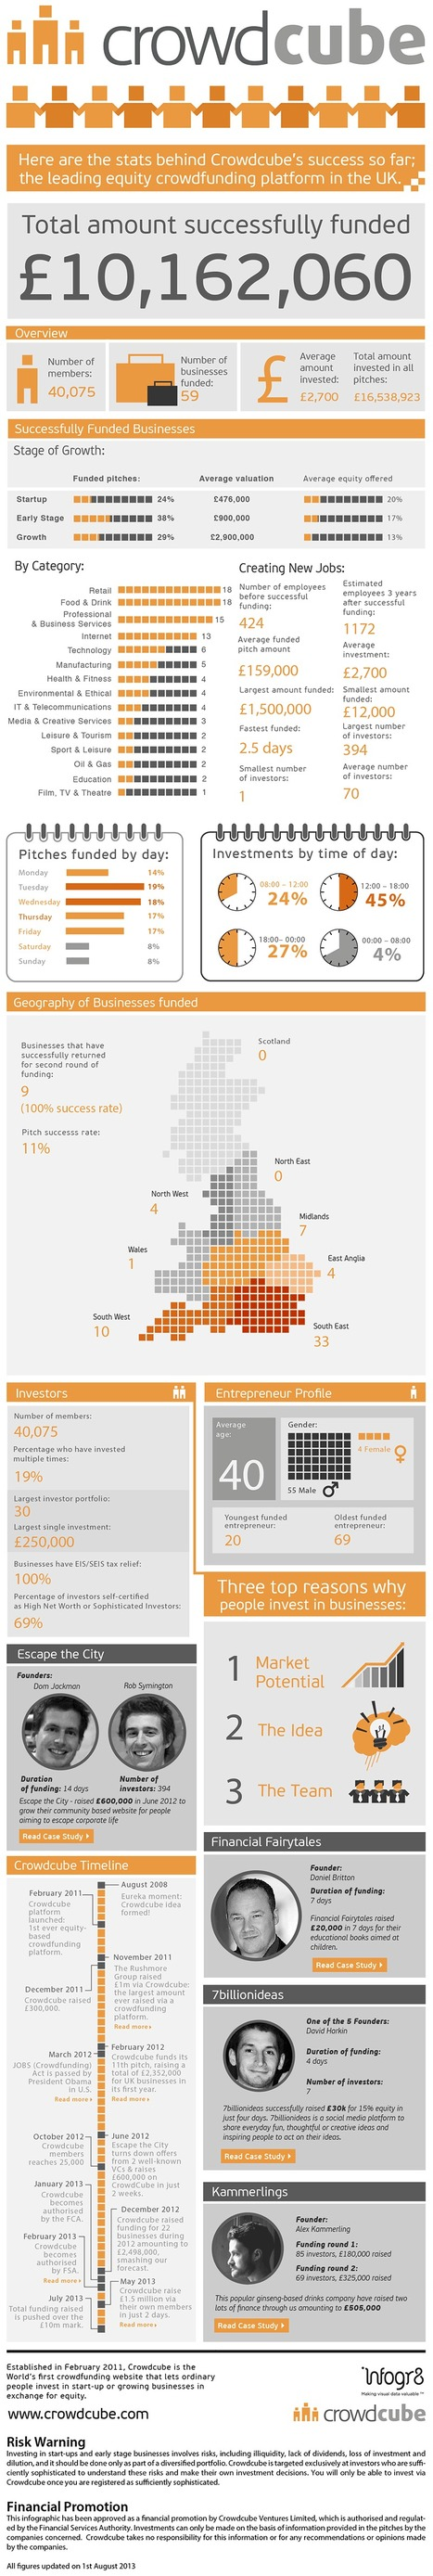 Crowdcube Passes £10M in Crowdfunded Investments [Infographic] | Crowdfunding World | Scoop.it